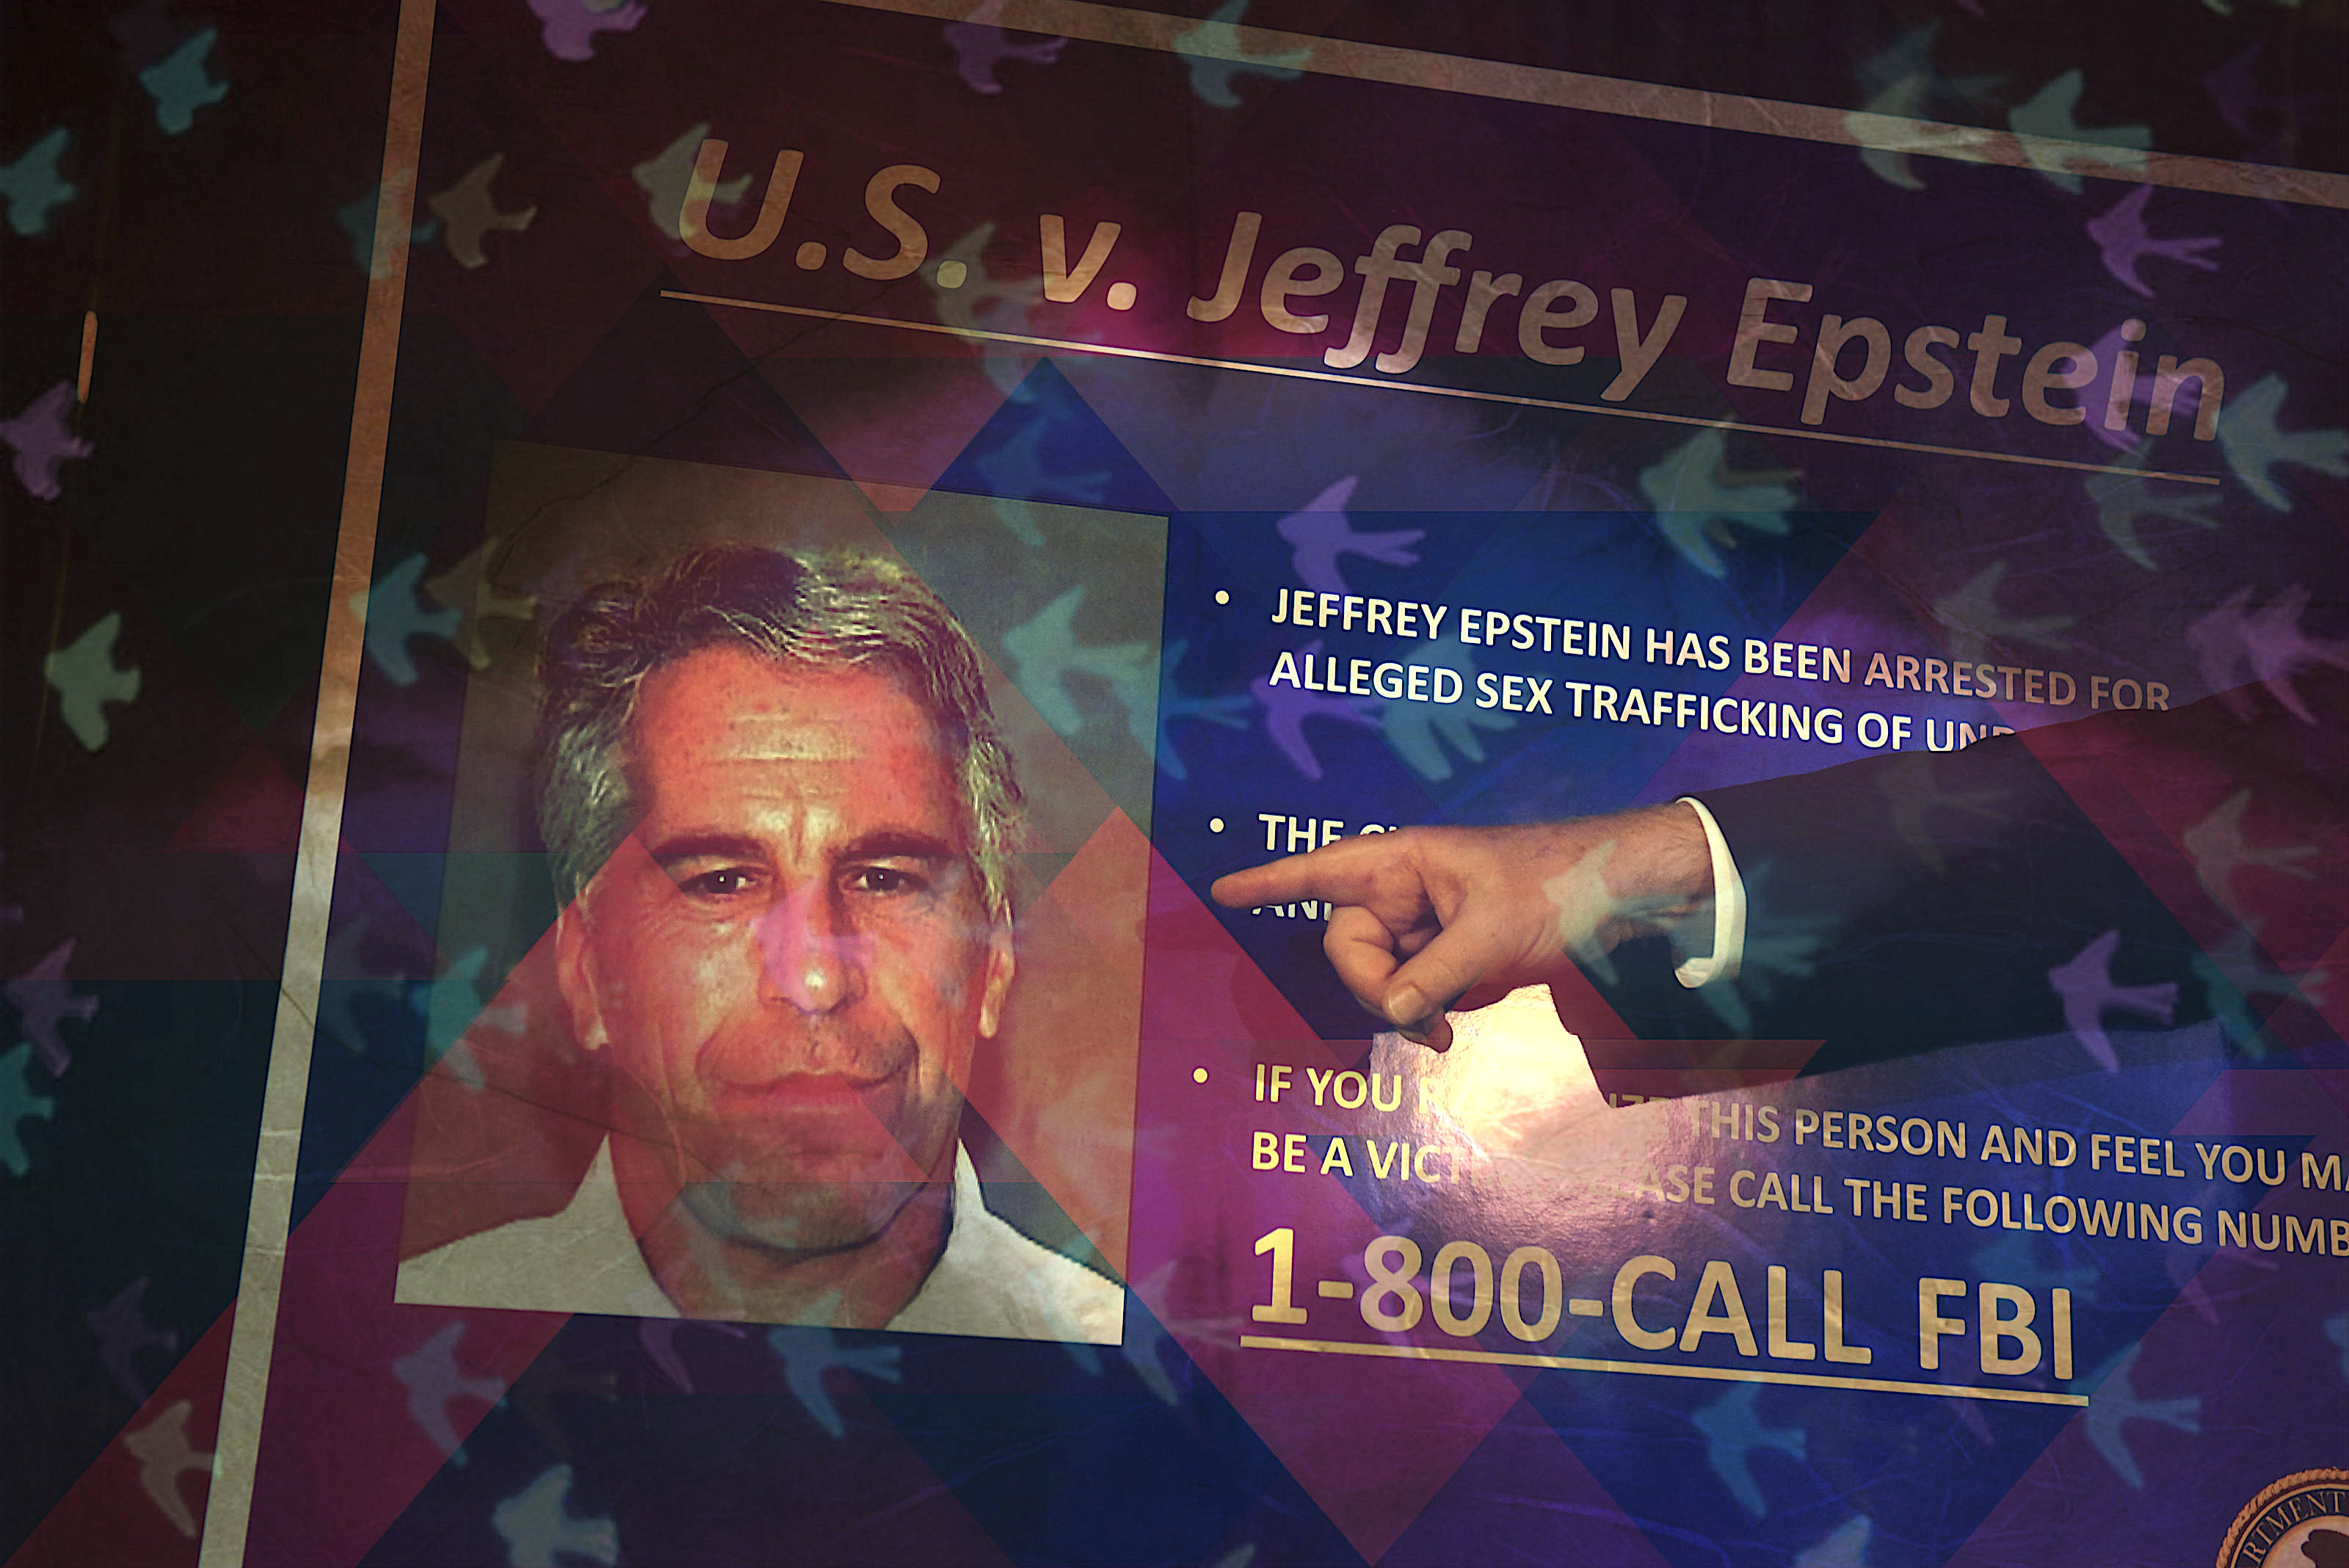 A person pointing at an FBI poster seeking calls for information on Epstein.